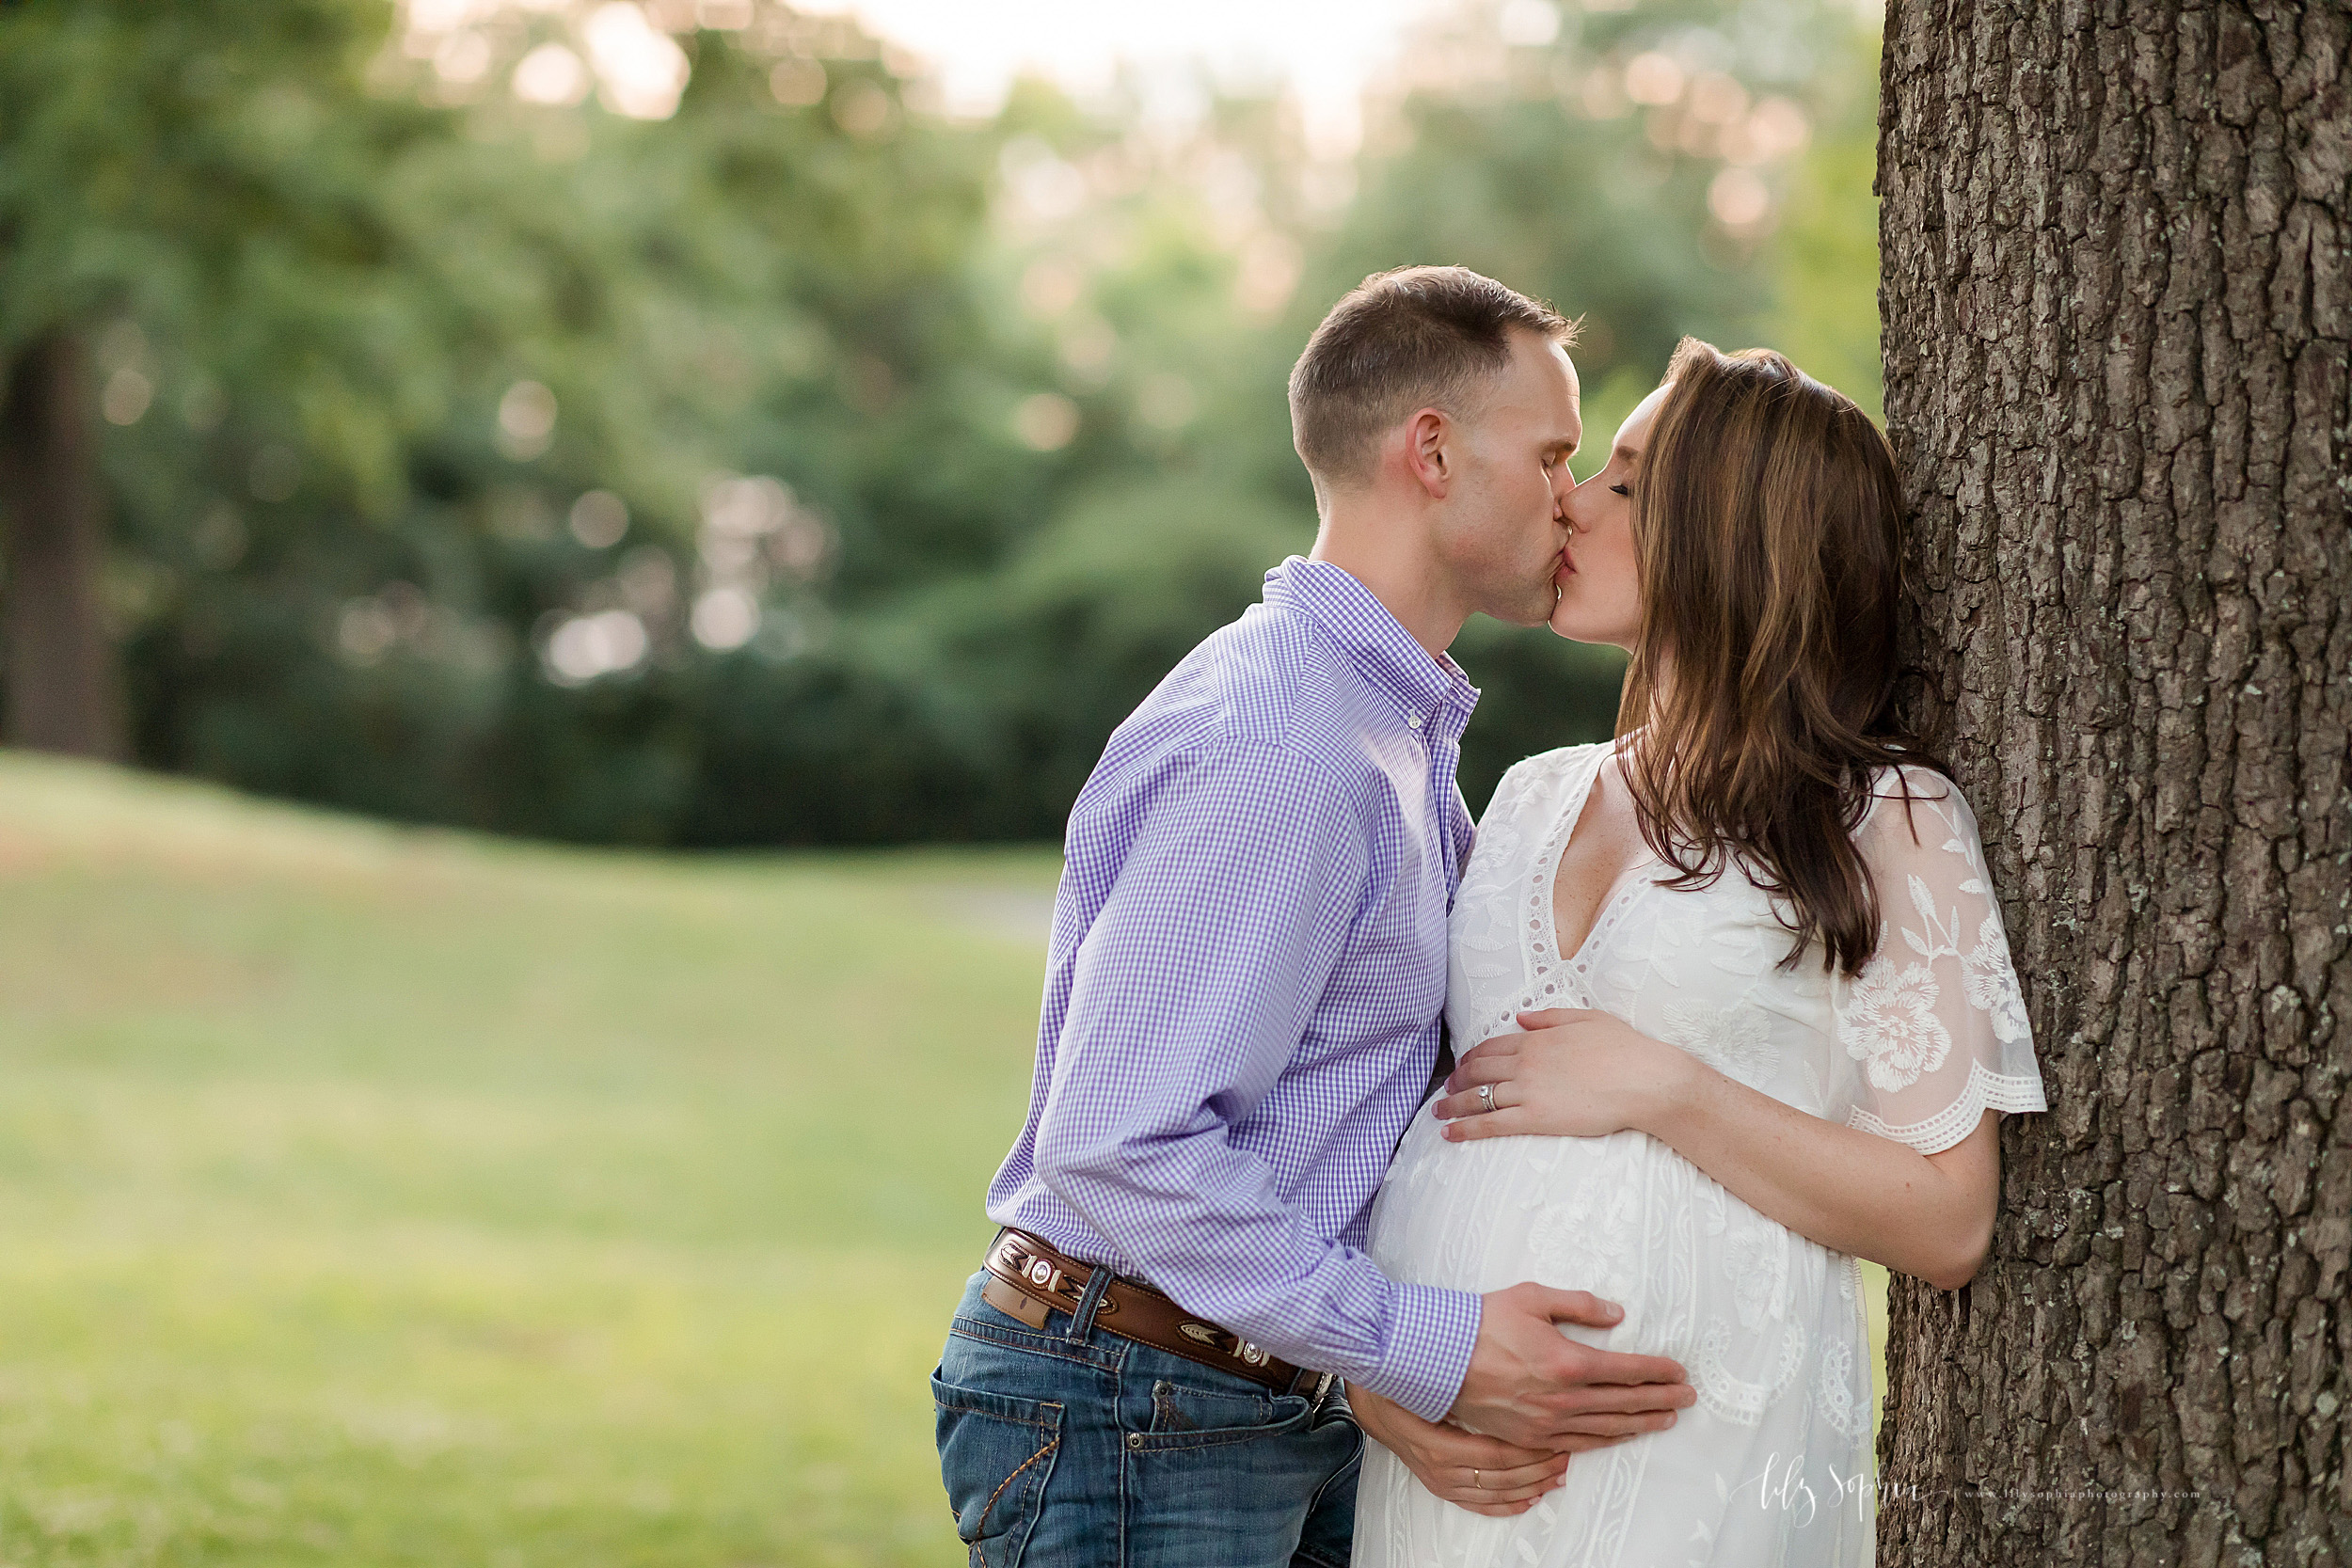 Maternity shoot of a couple in a park in Atlanta taken by Lily Sophia Photography. The wife has her back against a tree as the couple stand in the park. The husband is leaning into his wife as they place their right hands on her belly.  The wife has her left hand resting on the top of her belly.  The two are kissing one another.